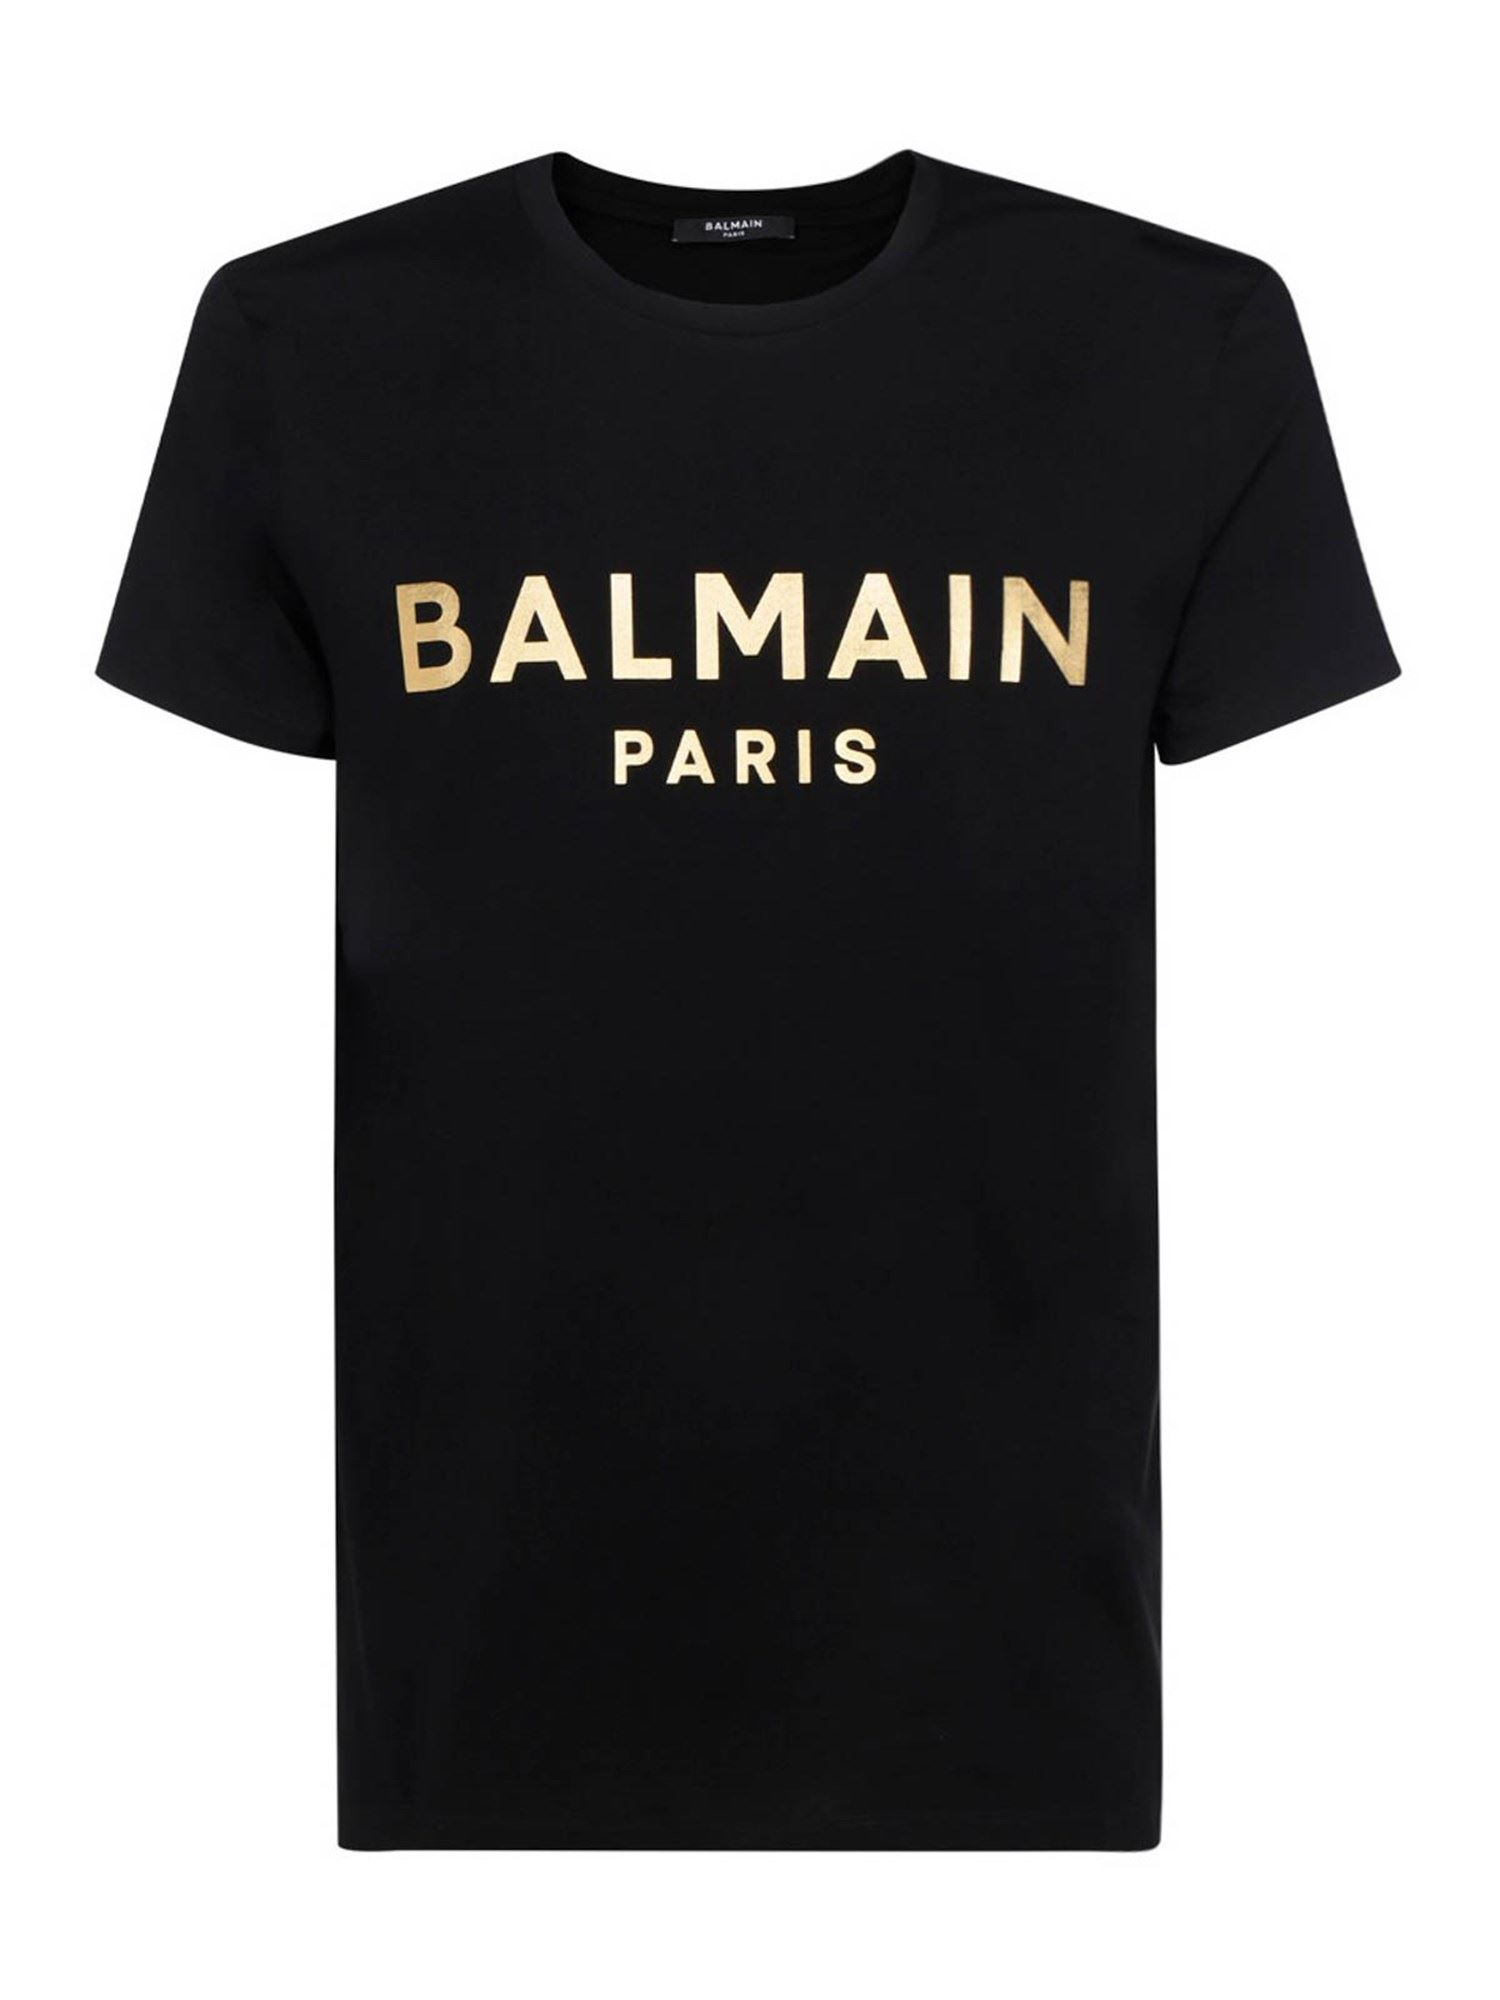 Balmain BRANDED T-SHIRT IN BLACK AND GOLD COLOR